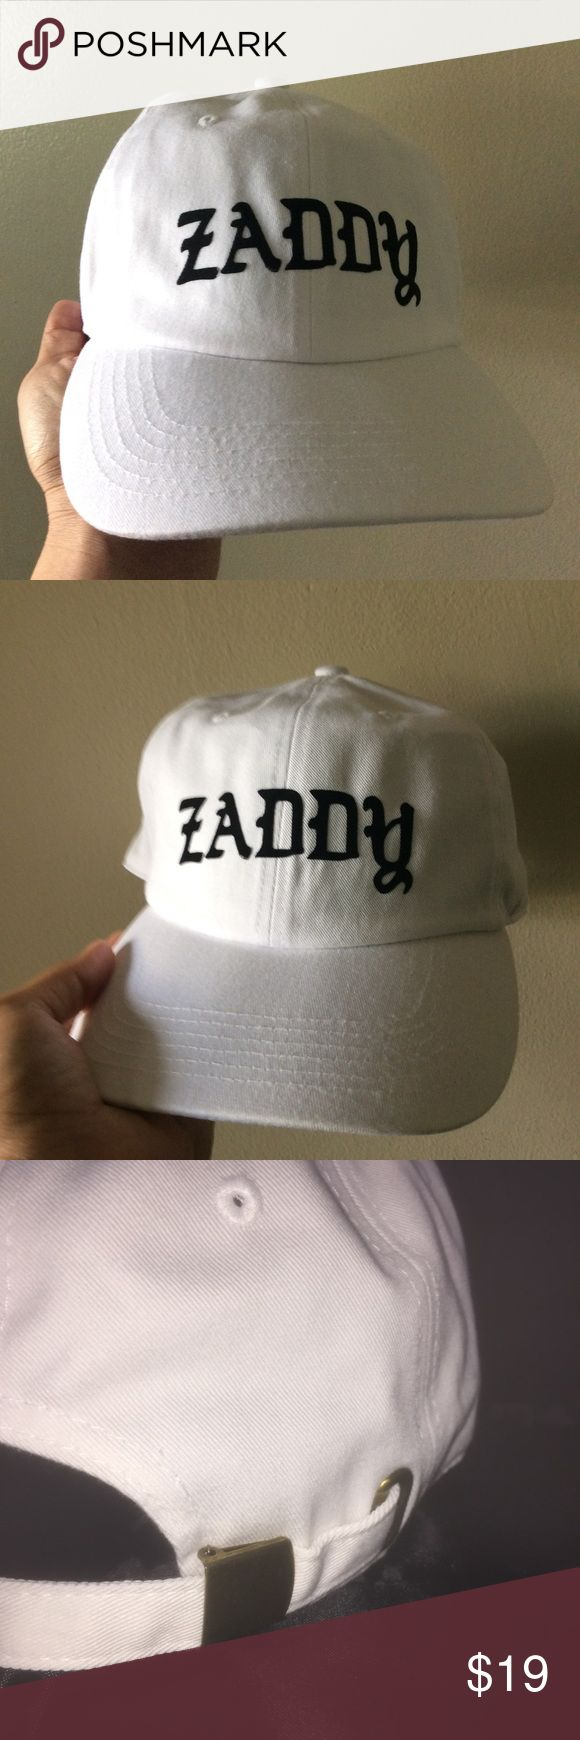 Zaddy Dad Hat NWT This White Strapback Dad Hat is adjustable with tuck pocket NEW___Ignore tags: huf, weed, marijuana, kush, obey, stussy, dope, trill, Blvck, boy london, paris, joggers,  trap style, rave, rare, huf, blvck fashion, trill, pipe, dabber, glass, sad, me, goth, goth girl, woes, the six, 6ix, ovo, blvck, Brooklyn, London, pikachu, 6 God, glitter, naps, mobb, asap, long style, Ovo, snapback, pastel, Brandy, American, urban, anti social club Accessories Hats